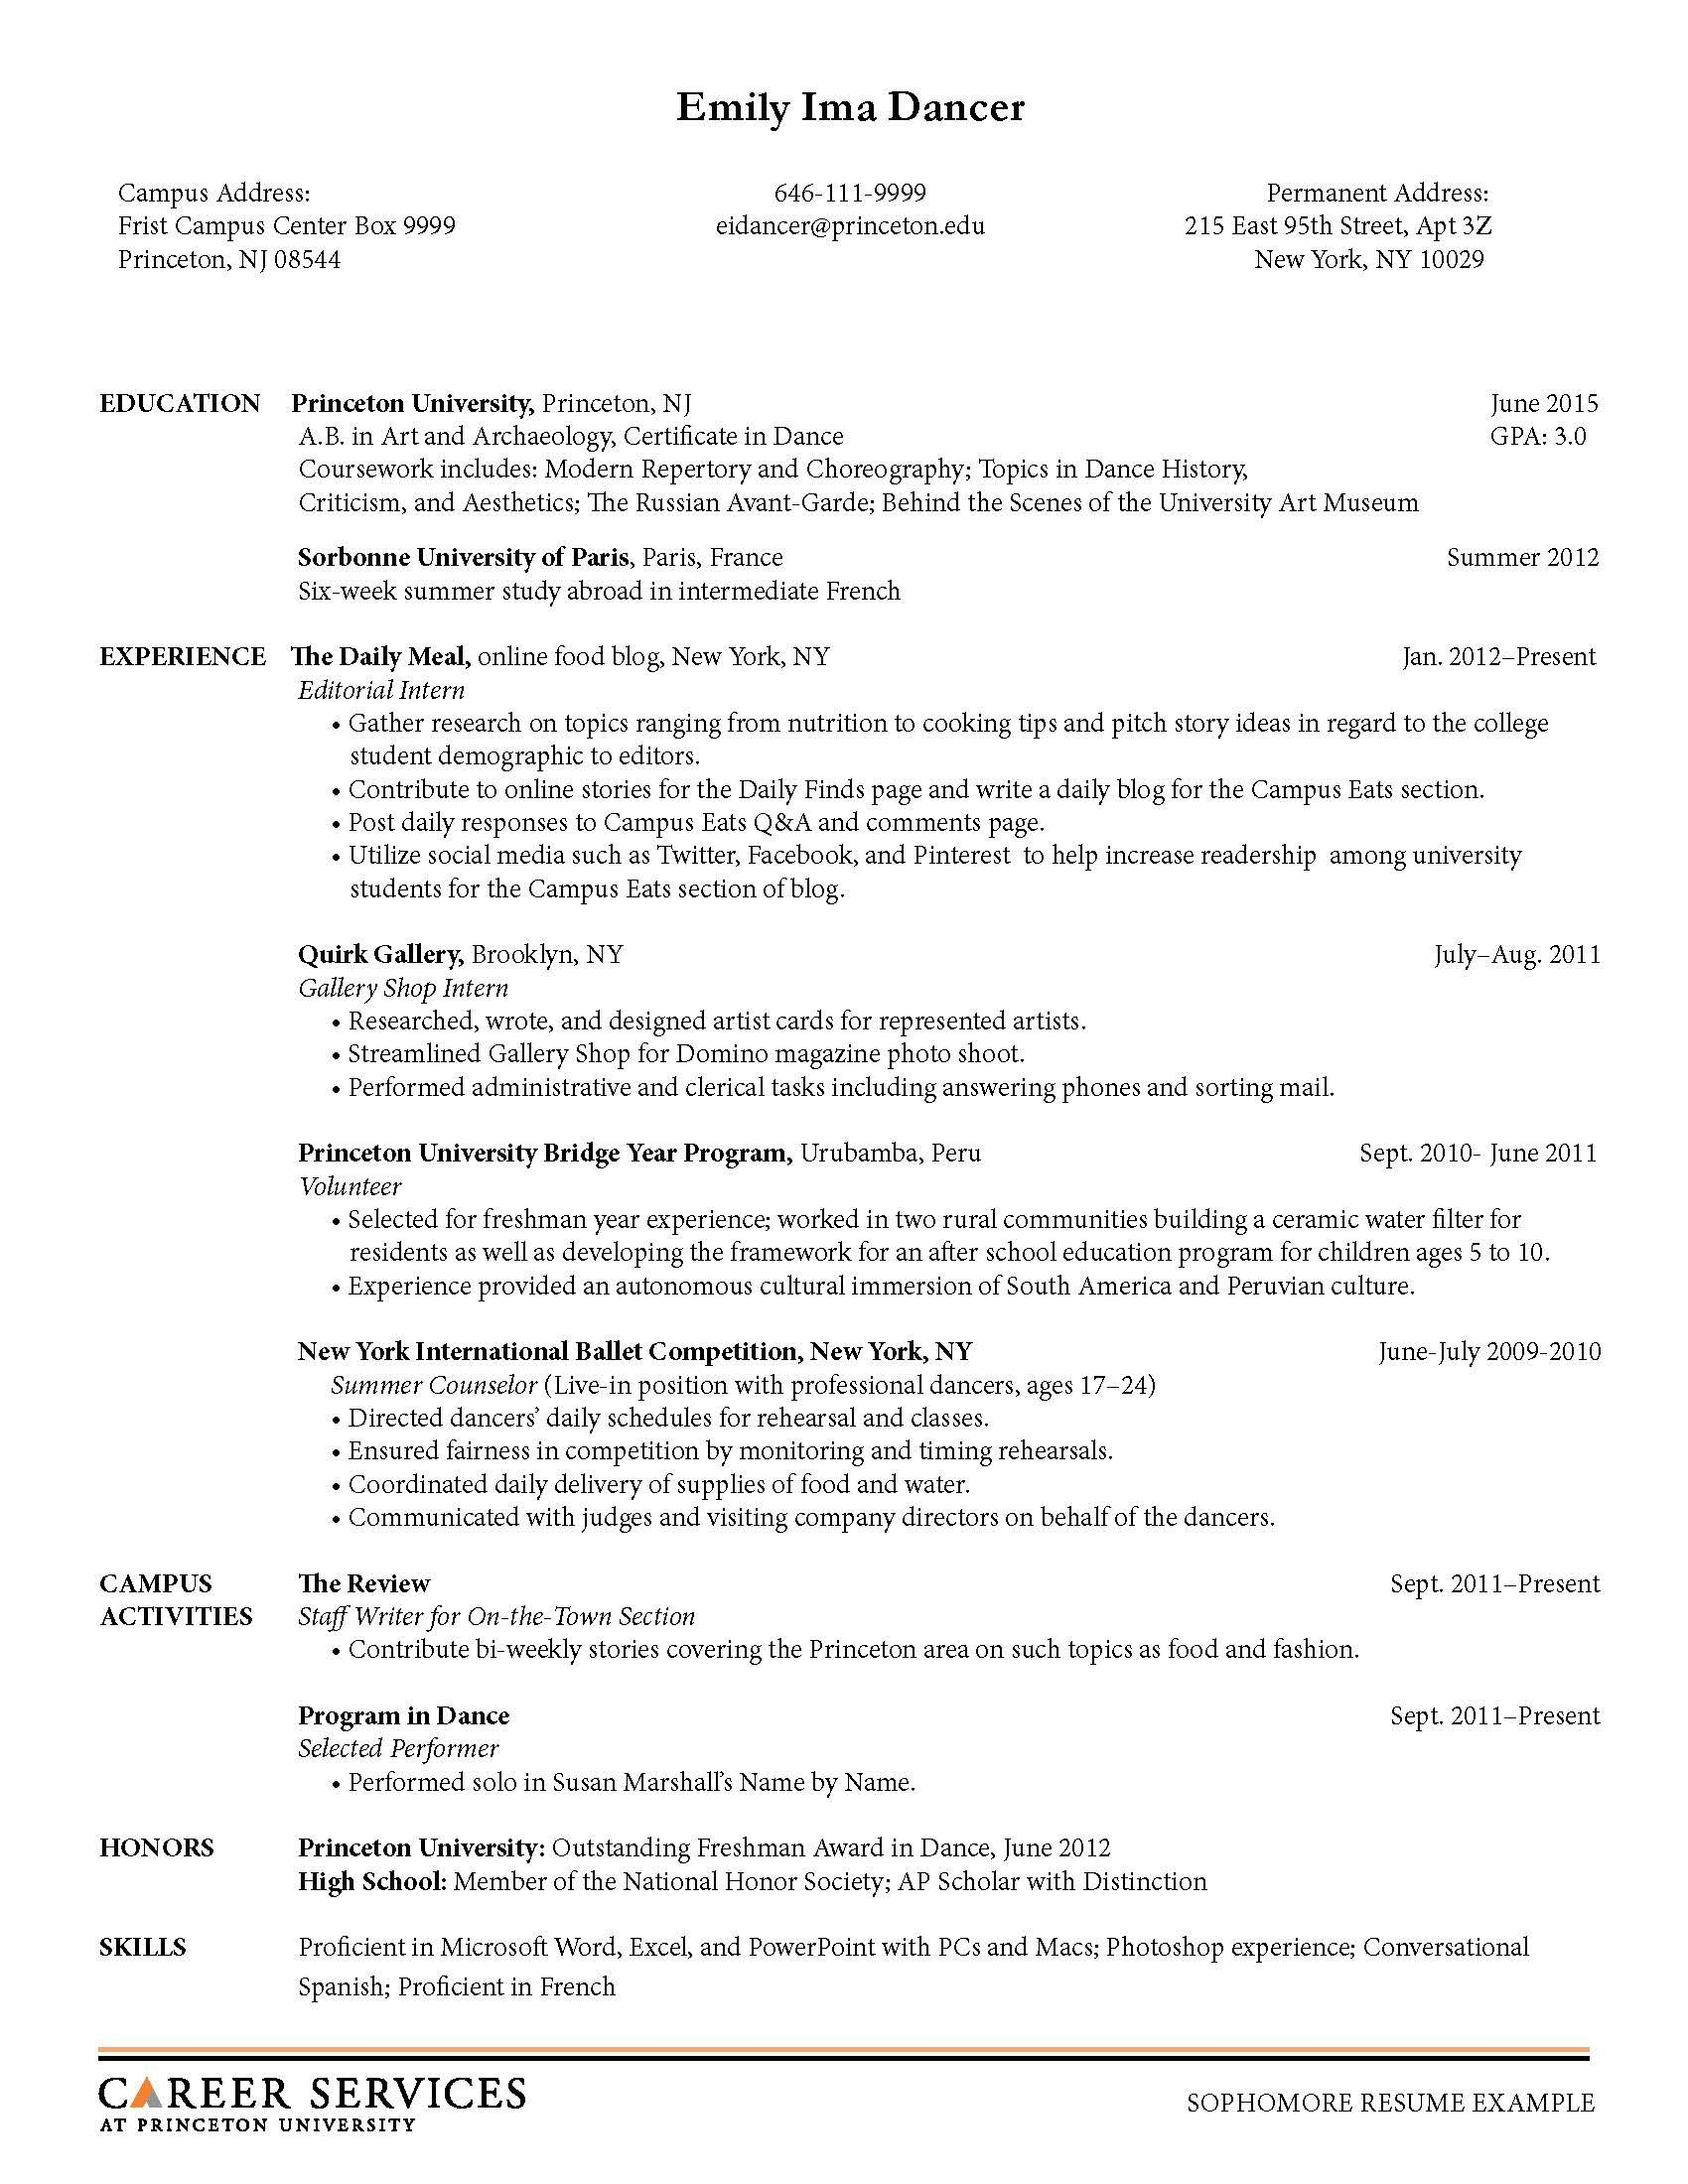 Picnictoimpeachus  Winsome Sample Resume Resume And Career On Pinterest With Exciting First Year Teacher Resume Examples Besides Service Resume Furthermore Help Create A Resume With Cute Write A Great Resume Also Example Of A College Resume In Addition Mailroom Clerk Resume And Sample Resume For Retail Sales As Well As How To Build A College Resume Additionally Account Coordinator Resume From Pinterestcom With Picnictoimpeachus  Exciting Sample Resume Resume And Career On Pinterest With Cute First Year Teacher Resume Examples Besides Service Resume Furthermore Help Create A Resume And Winsome Write A Great Resume Also Example Of A College Resume In Addition Mailroom Clerk Resume From Pinterestcom